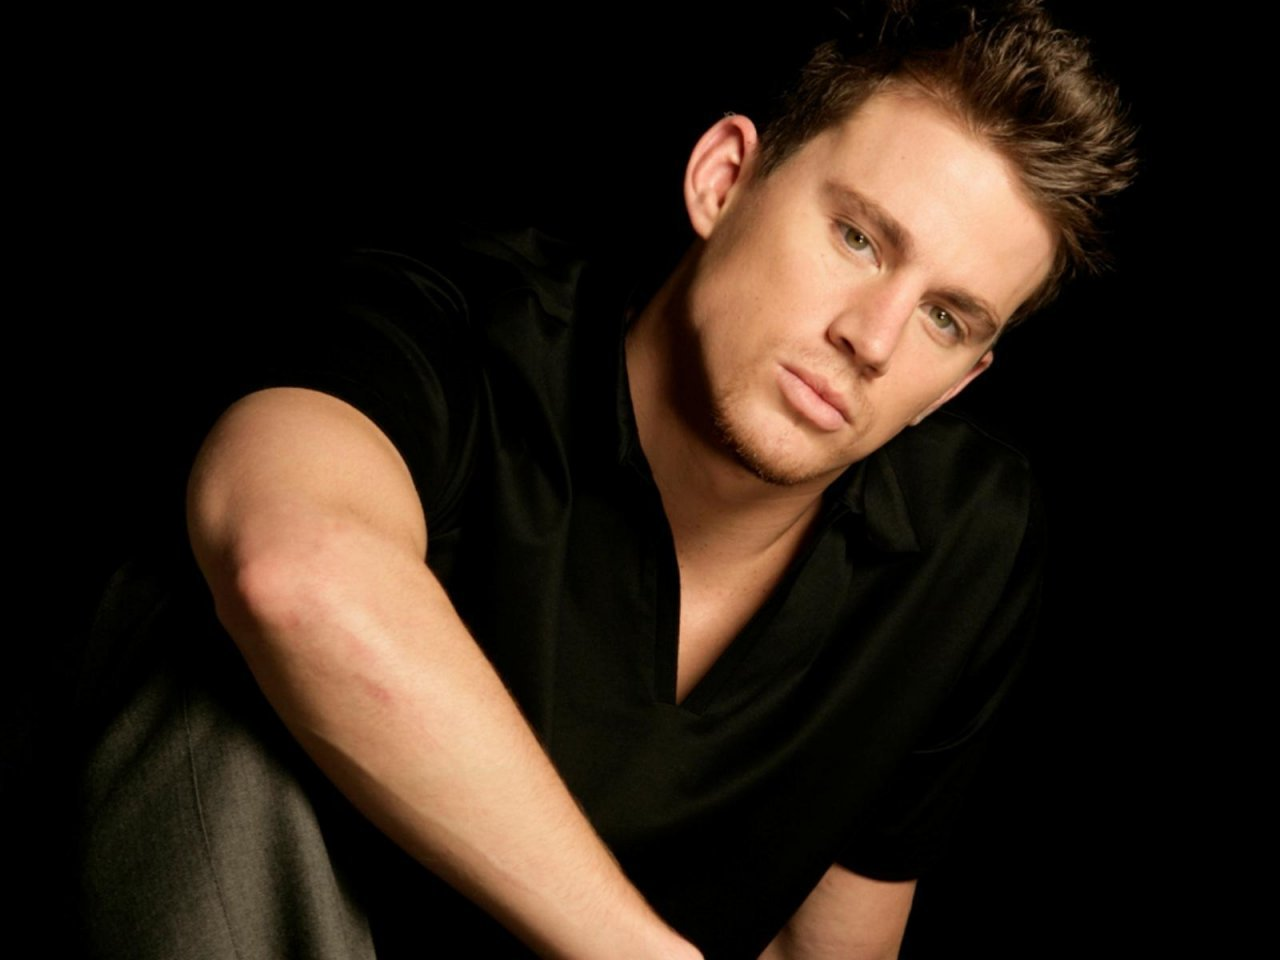 Channing Tatum - Channing Tatum Wallpaper (18833368) - Fanpop Channing Tatum